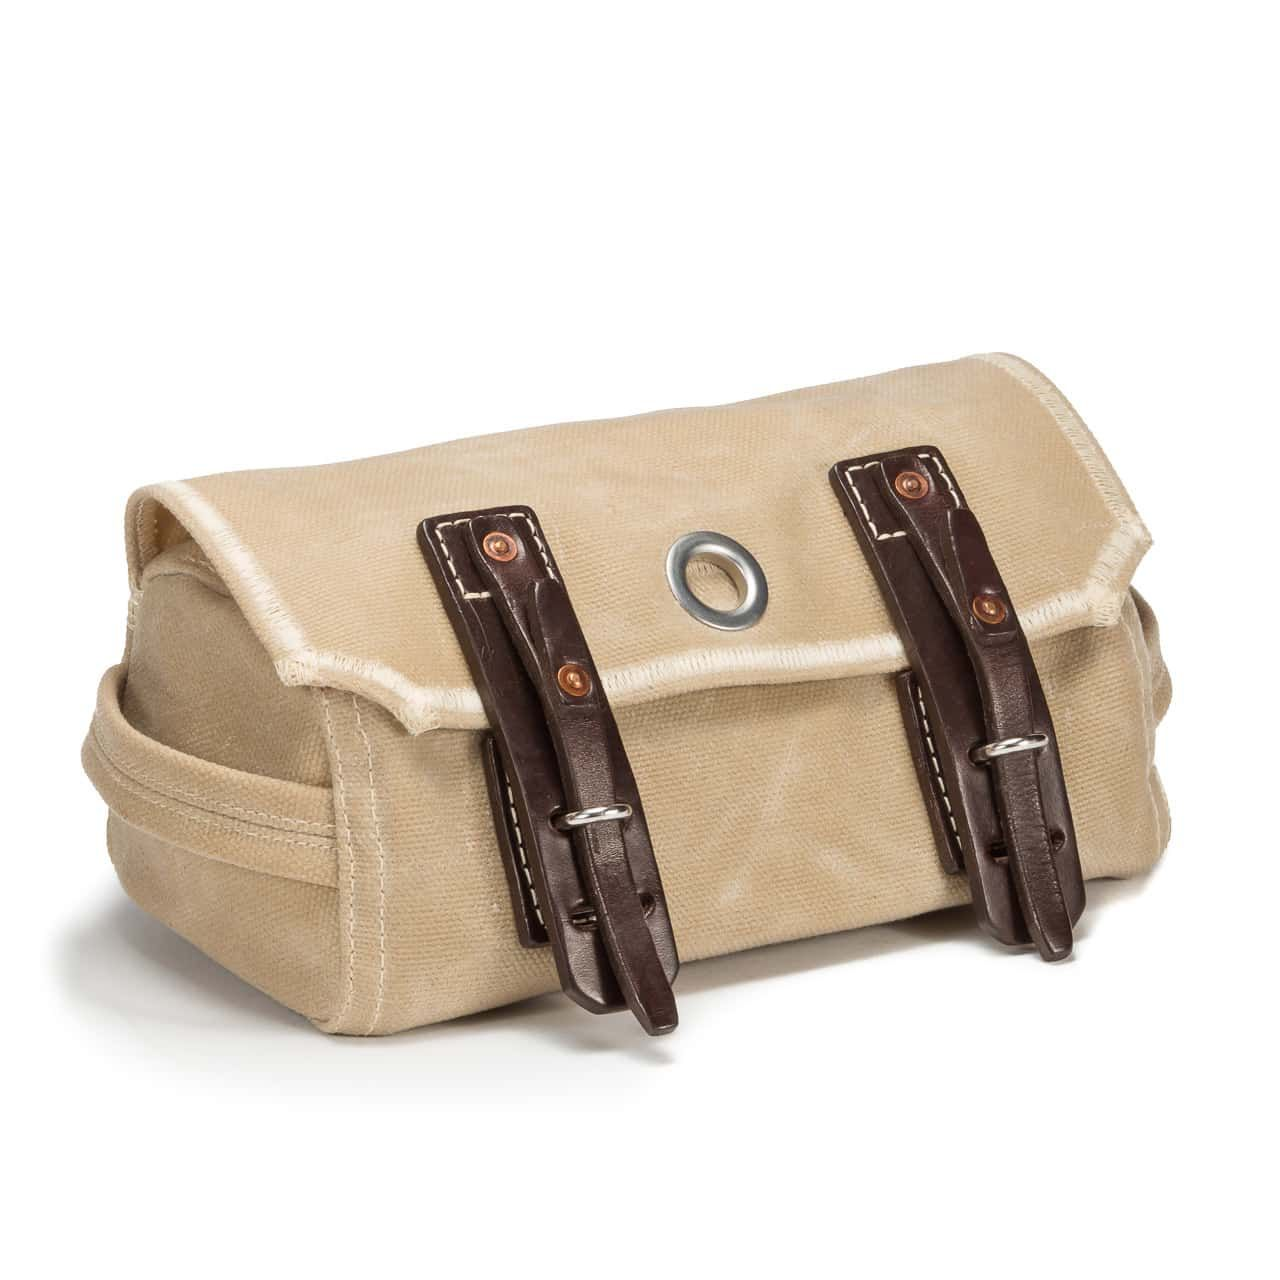 Dopp Kit in Color Sand Front Angle